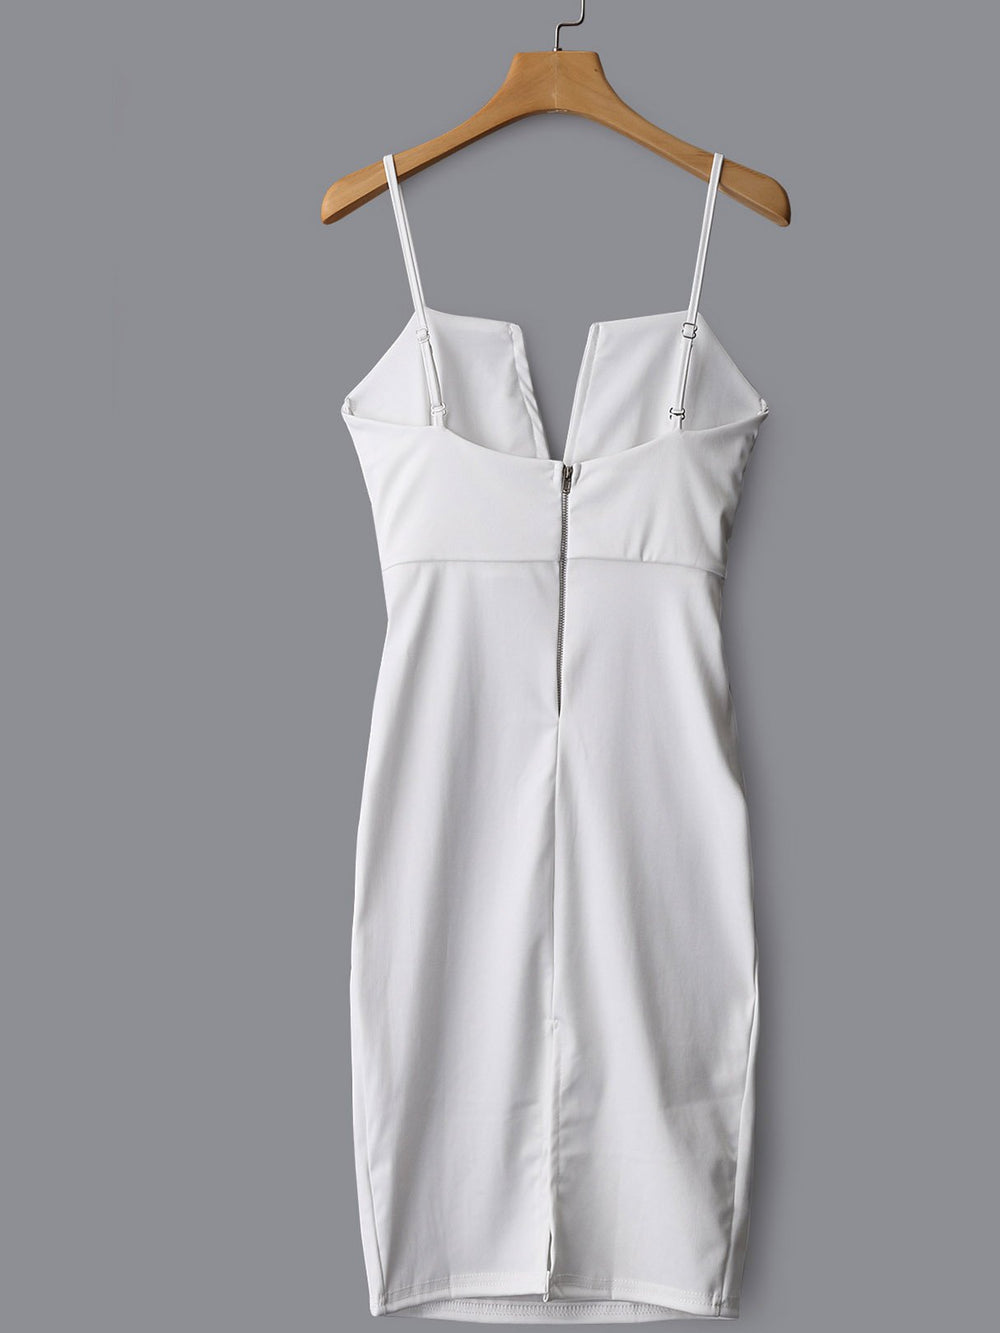 Ladies White Bodycon Dresses